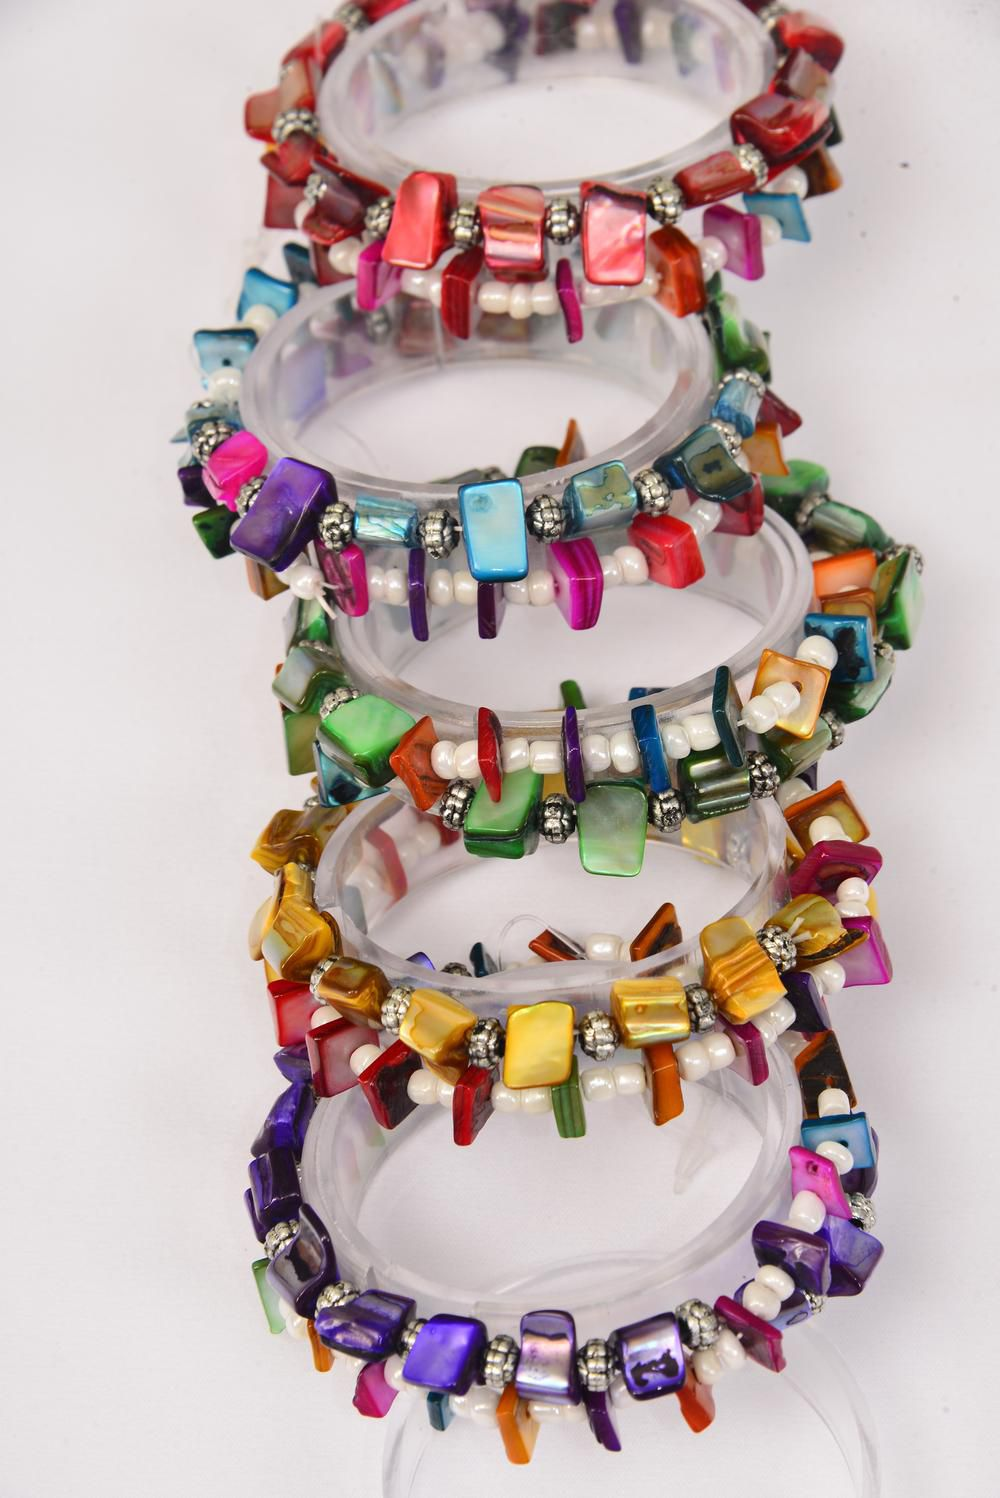 Bracelets 2 String Seashell Block & Beads Mix Stretch/DZ **Stretch** 2 of each Color Asst,Hang Tag & OPP Bag & UPC Code